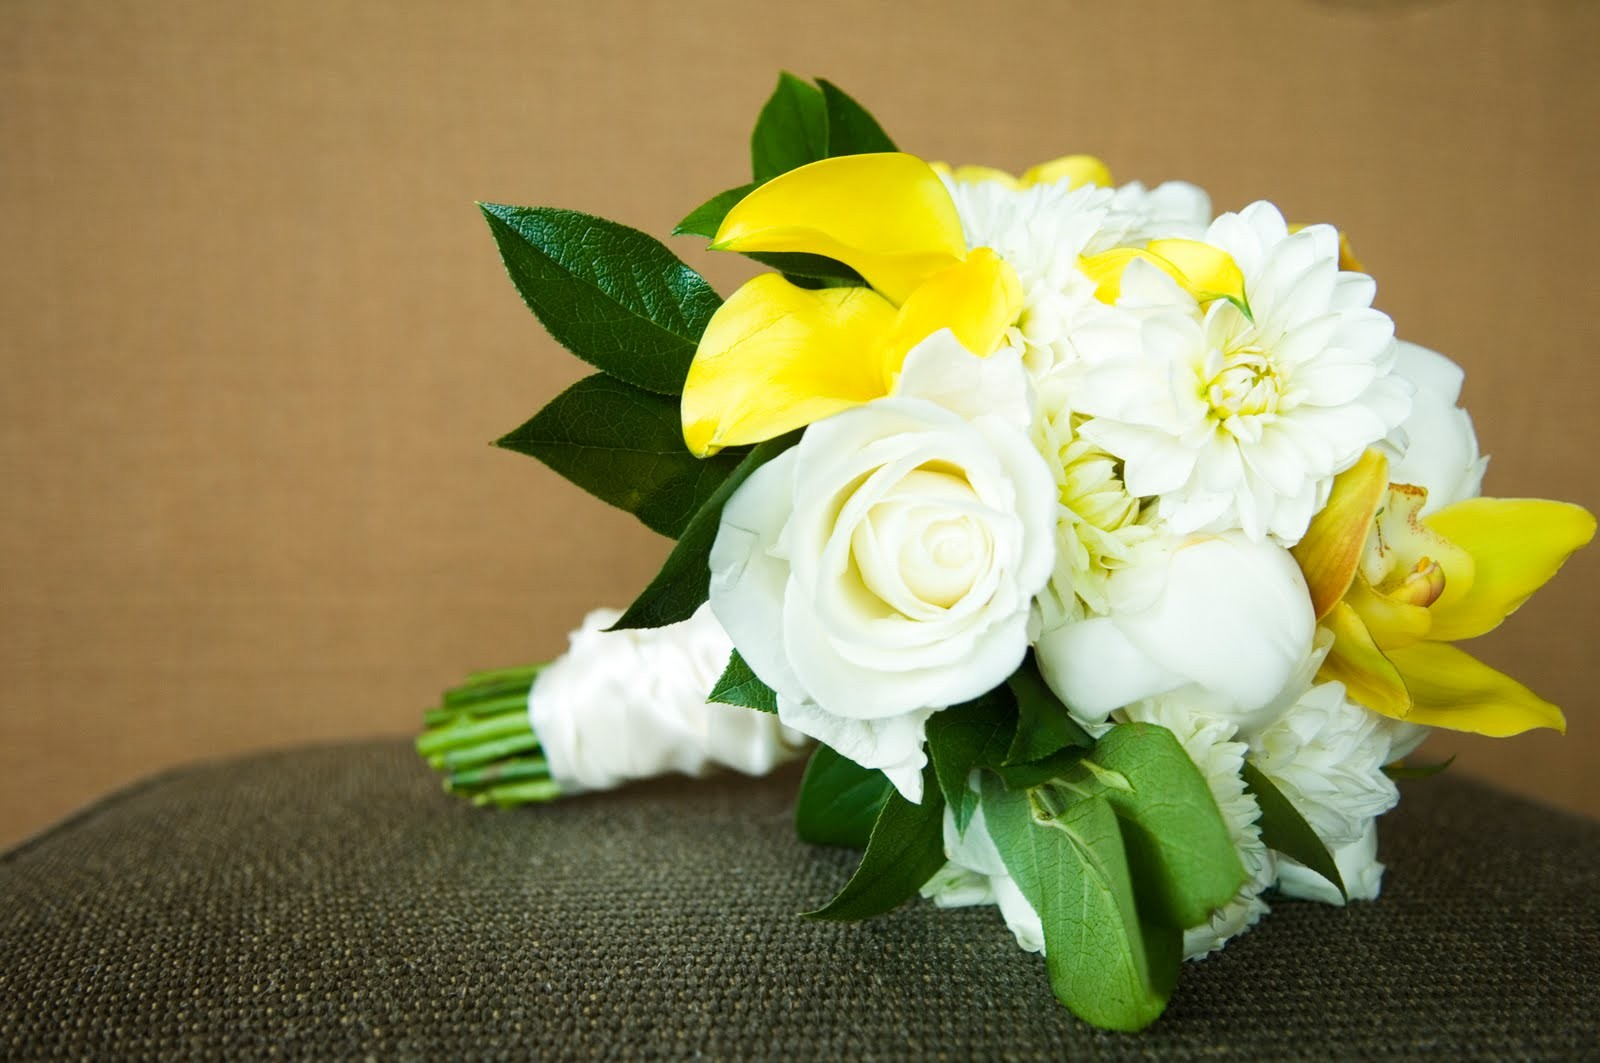 Bouquet Beautiful Roses Lovely Beauty Yellow White - Garden Roses , HD Wallpaper & Backgrounds